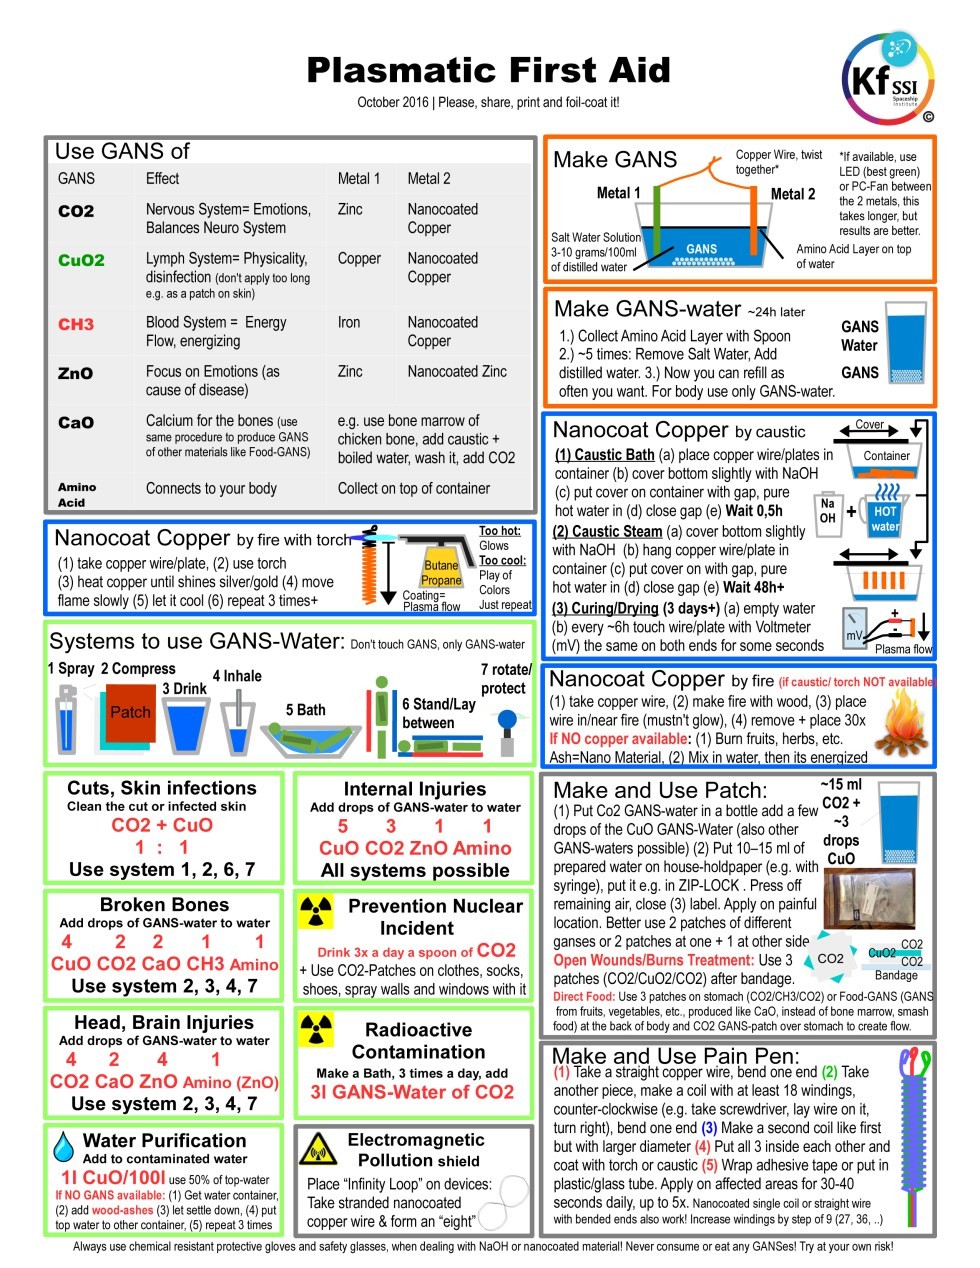 Plasmatic first aid chart